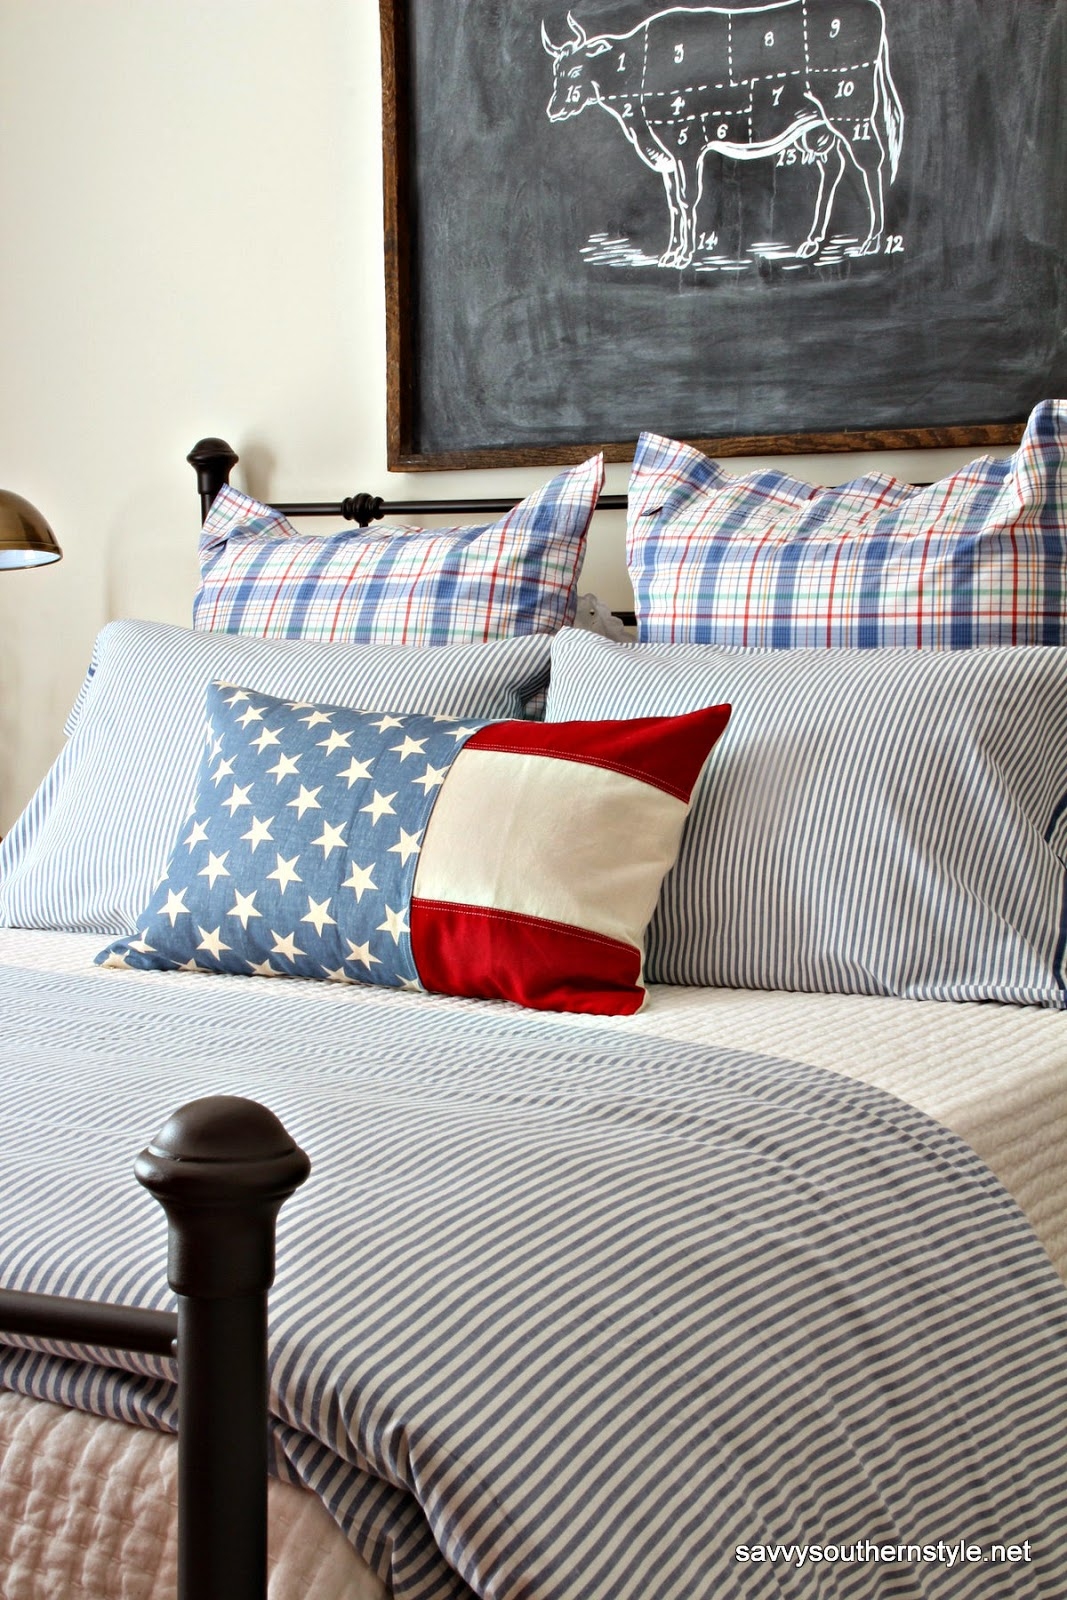 Southern Farmhouse Bedroom Ideas: Savvy Southern Style : A Patriotic Favorite Room